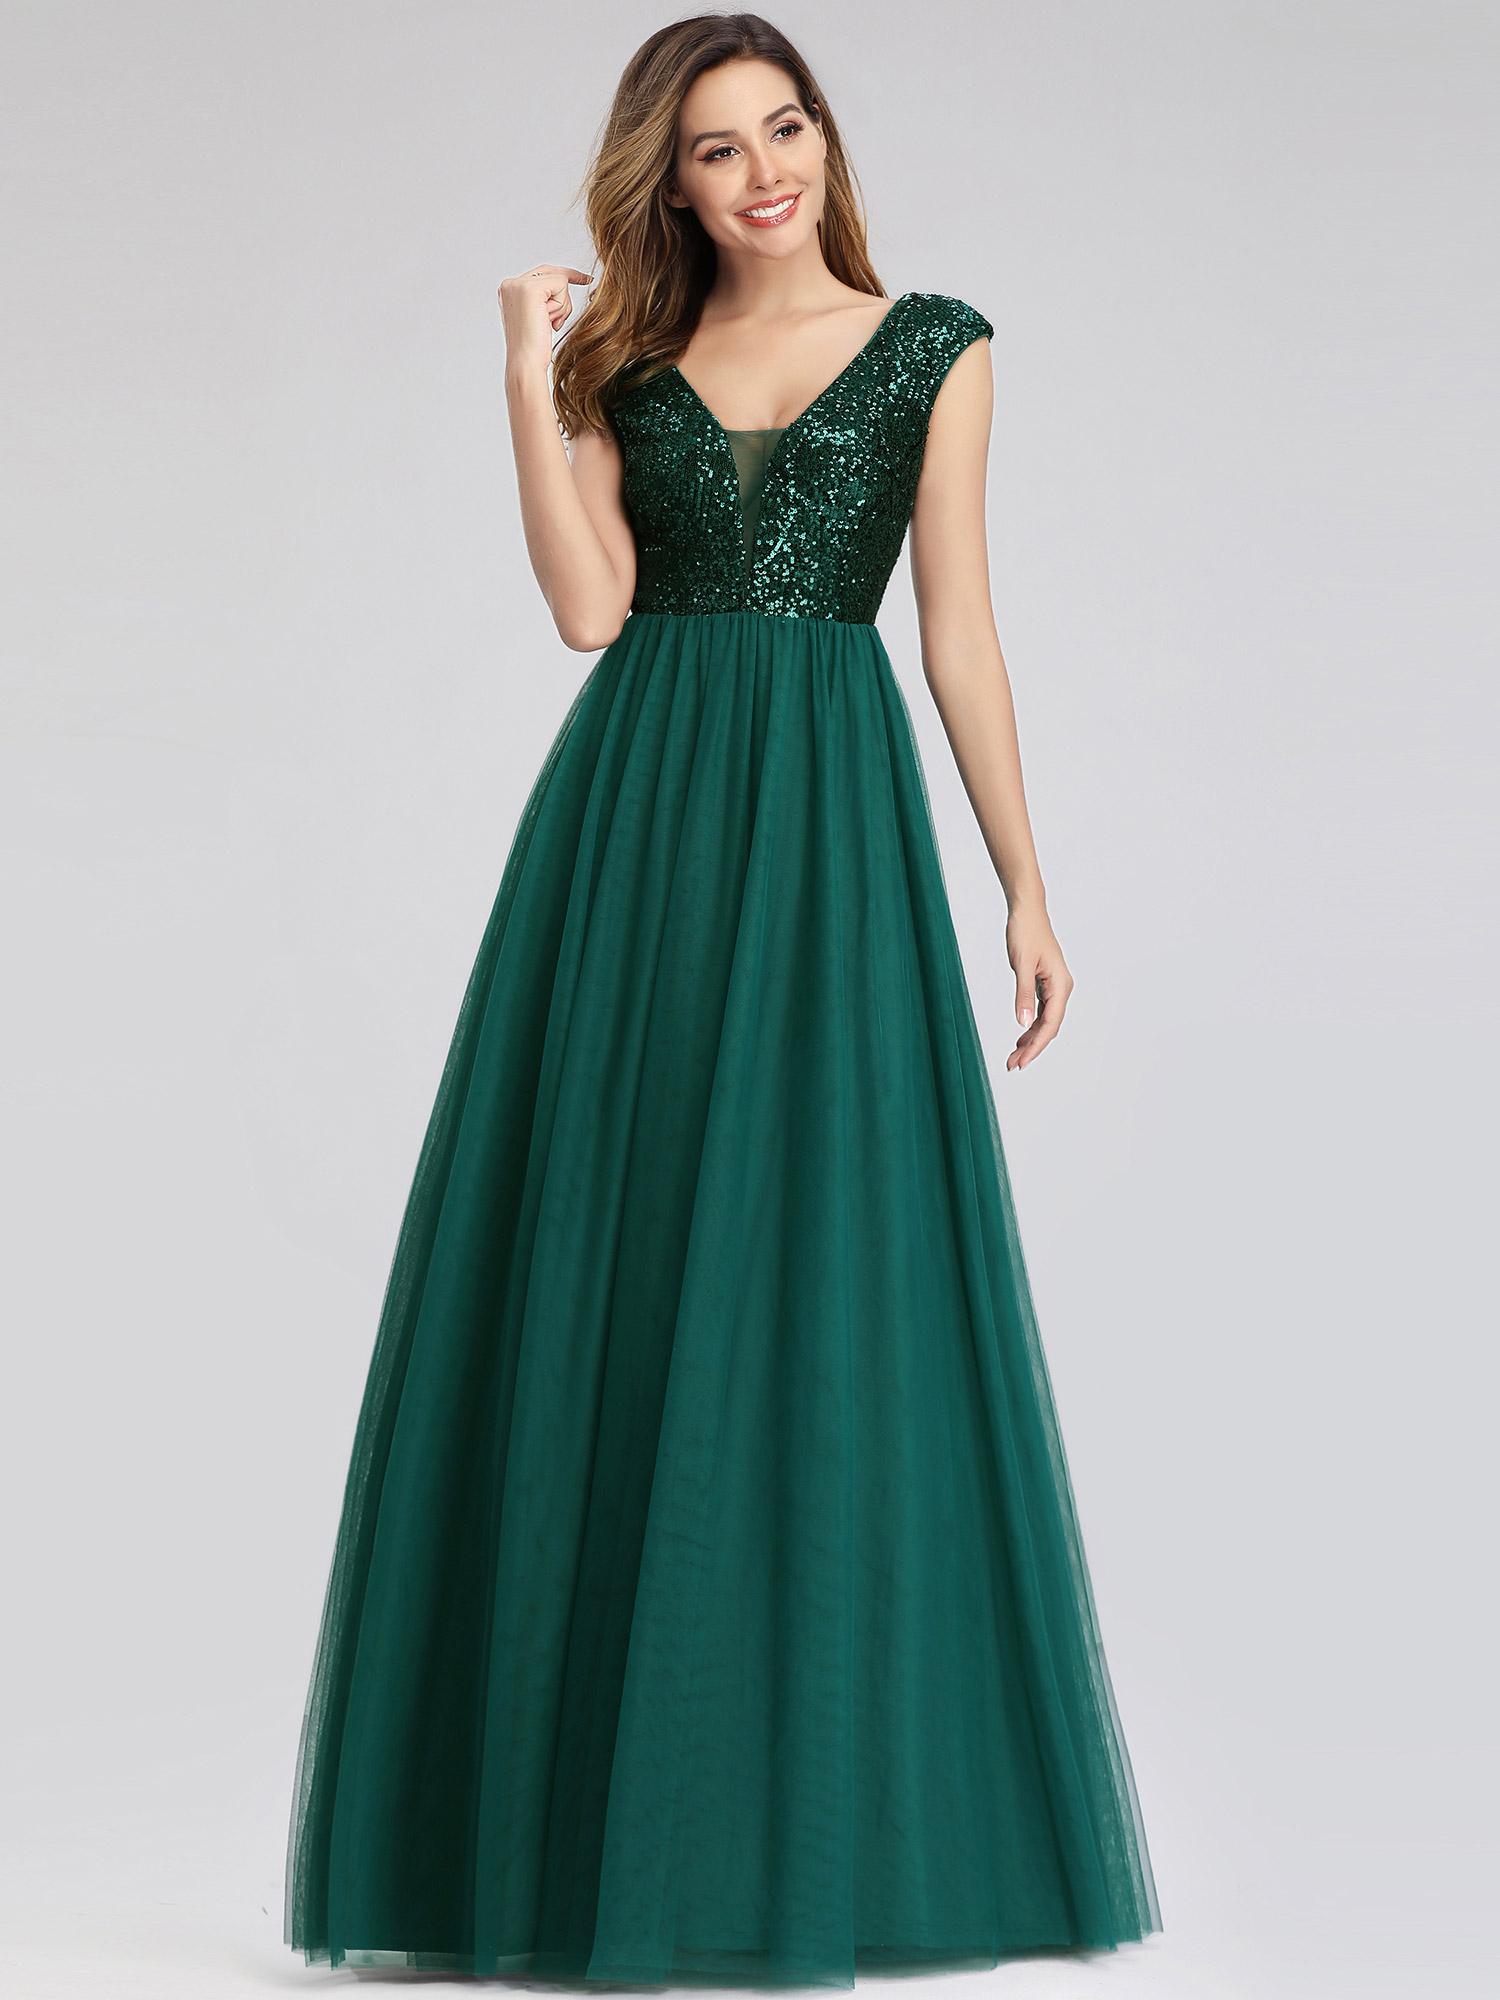 Ever-Pretty-A-Line-Bridesmaid-Dresses-Long-Chiffon-Lace-Wedding-Prom-Gown-00983 thumbnail 7